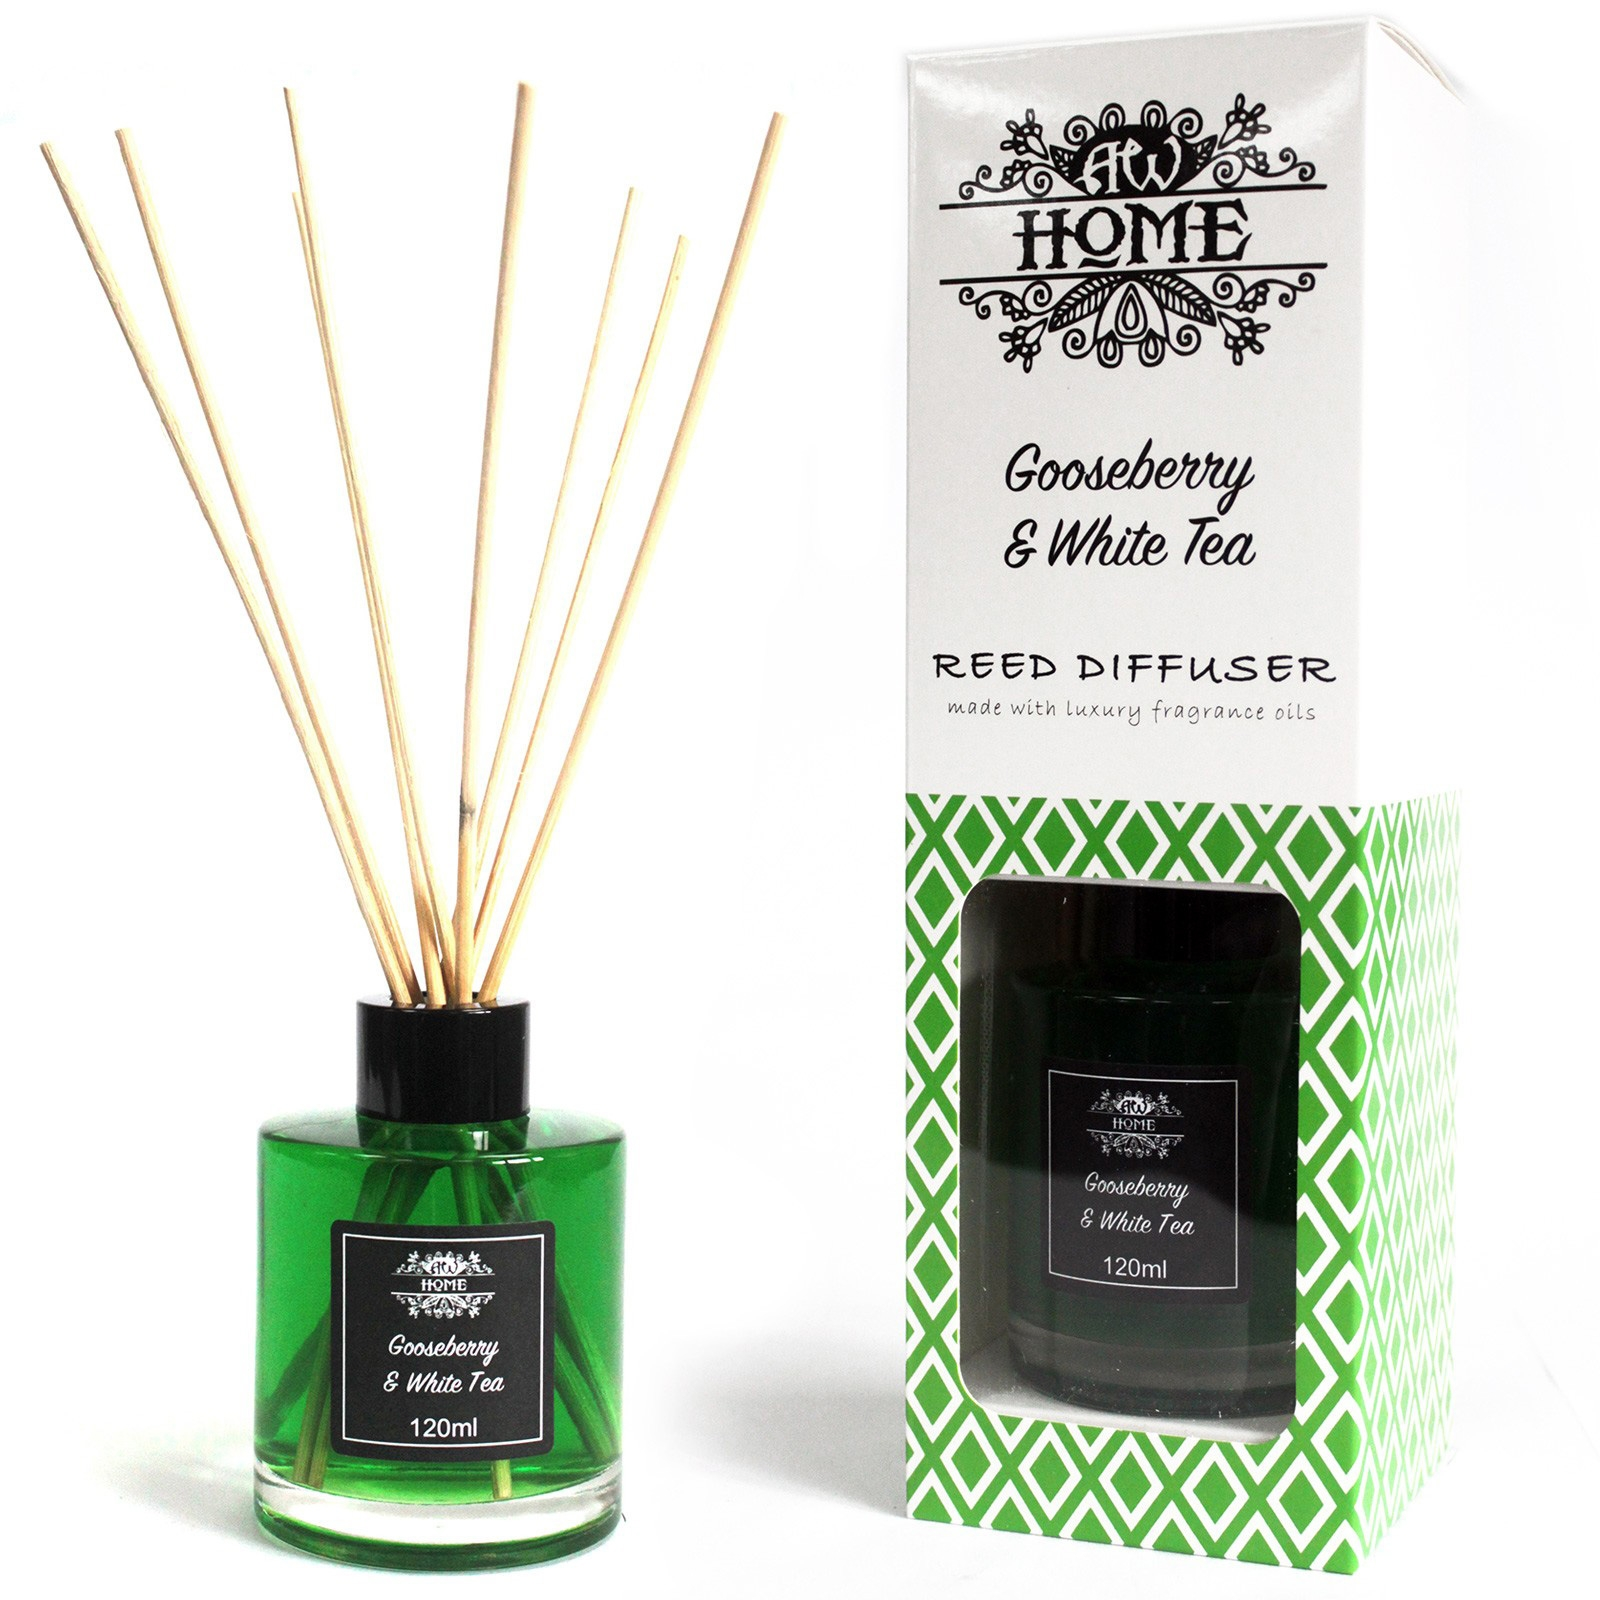 Gooseberry And White Tea Reed Diffuser 120ml